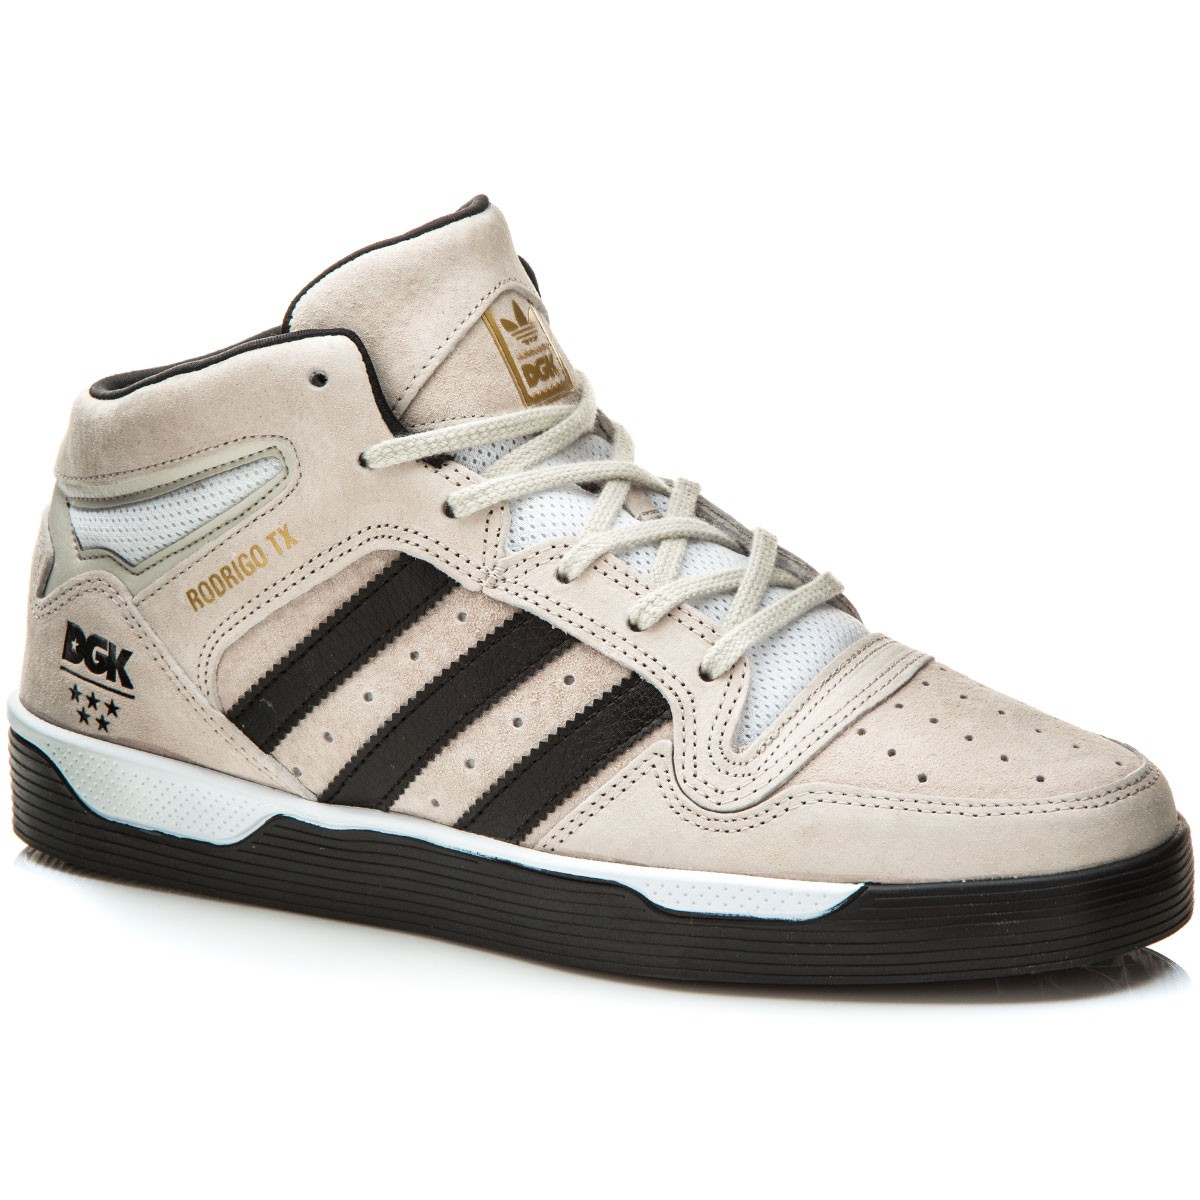 Adidas X DGK Locator Mid Shoes